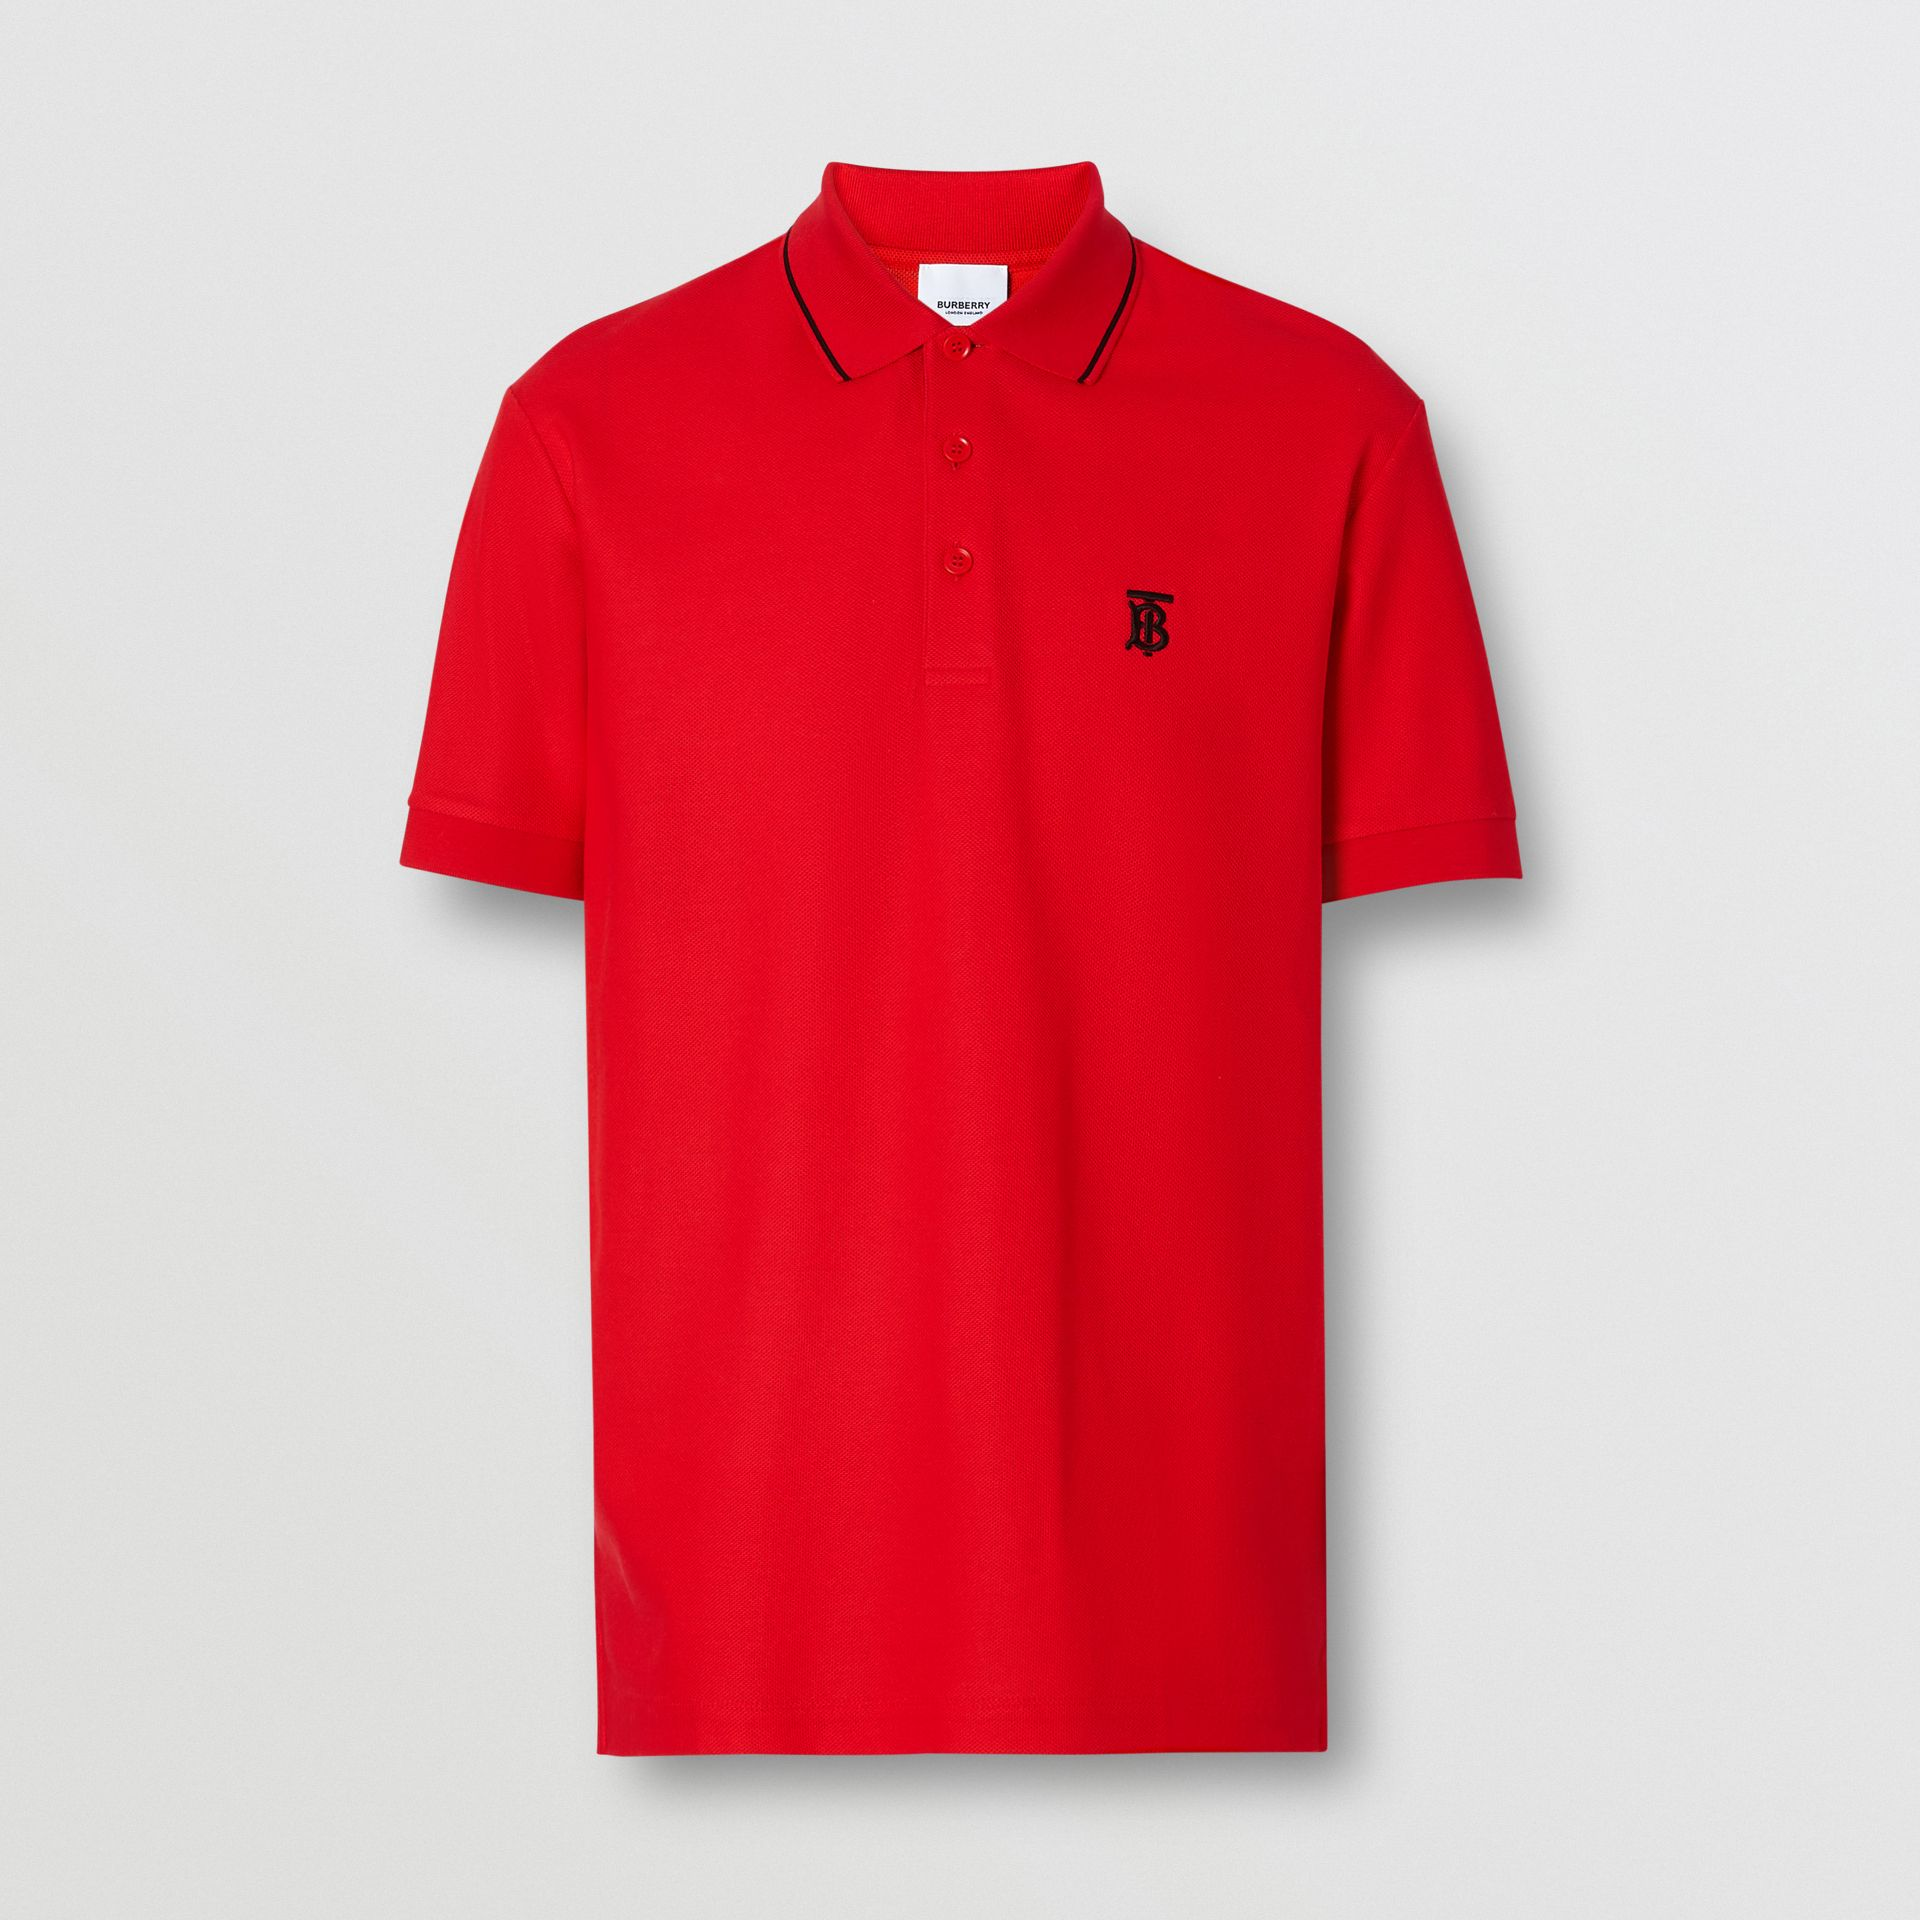 Icon Stripe Placket Cotton Piqué Polo Shirt in Bright Red - Men | Burberry - gallery image 3